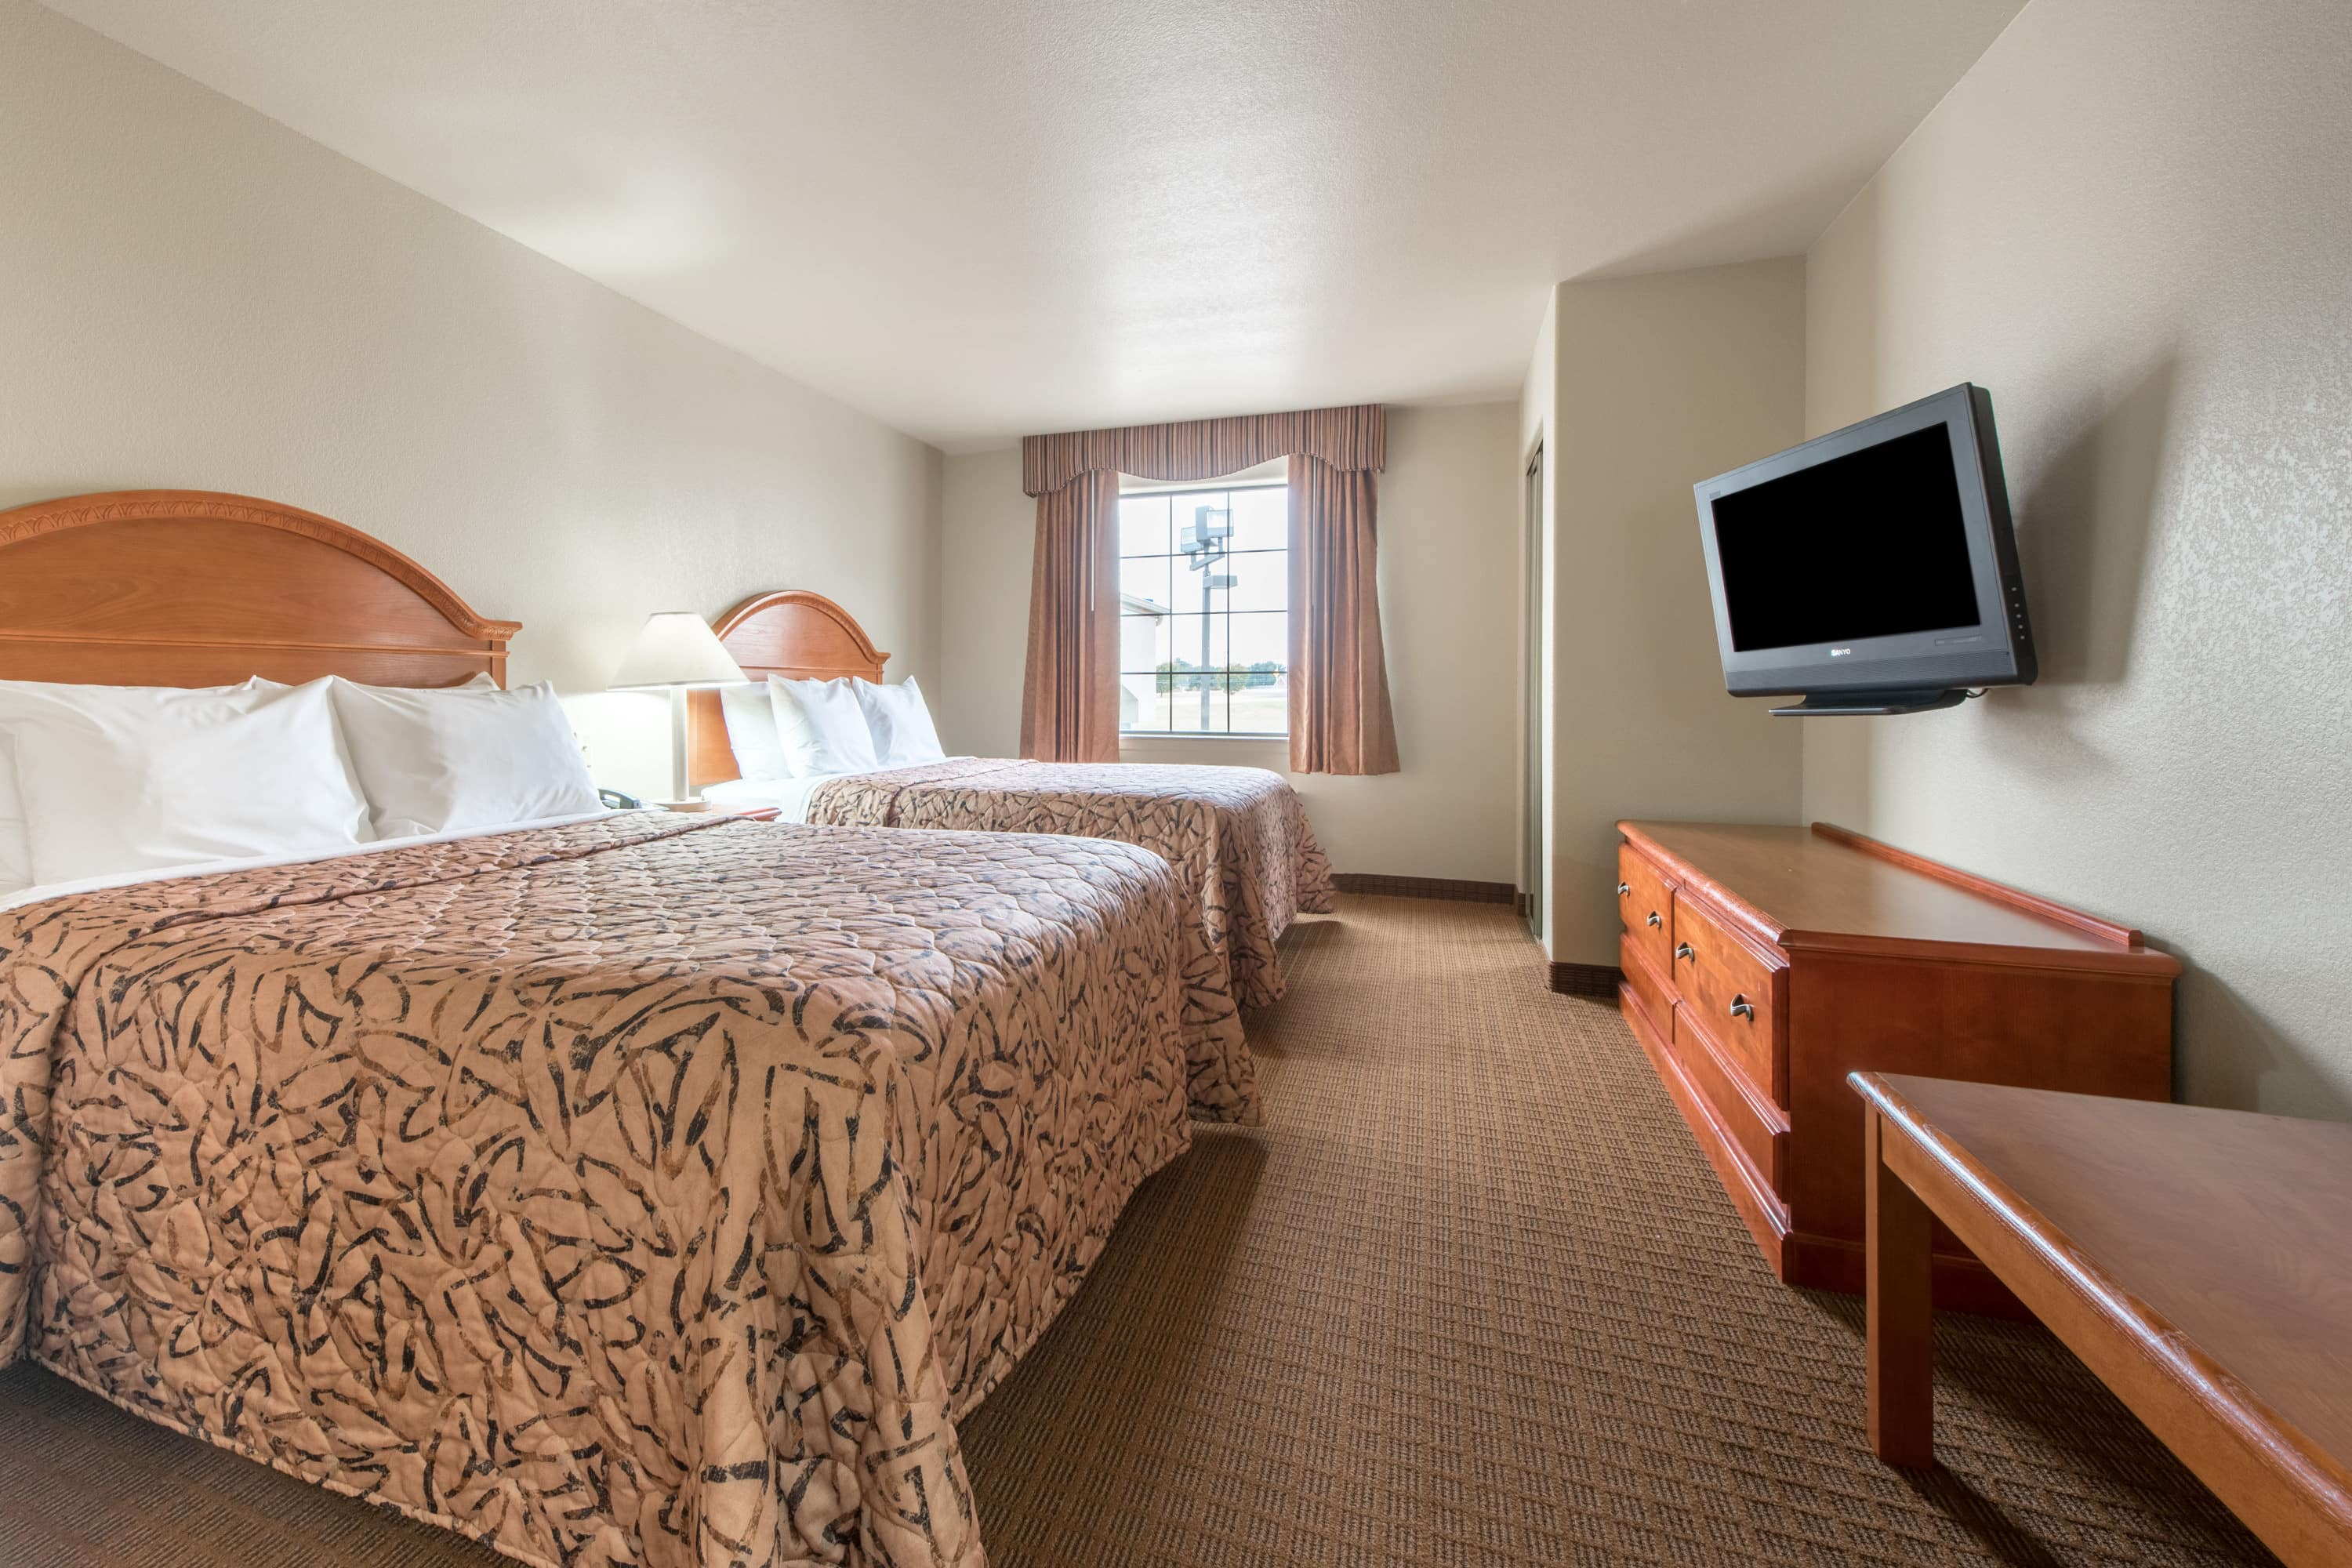 Guest room at the Days Inn & Suites Wichita Falls in Wichita Falls, Texas